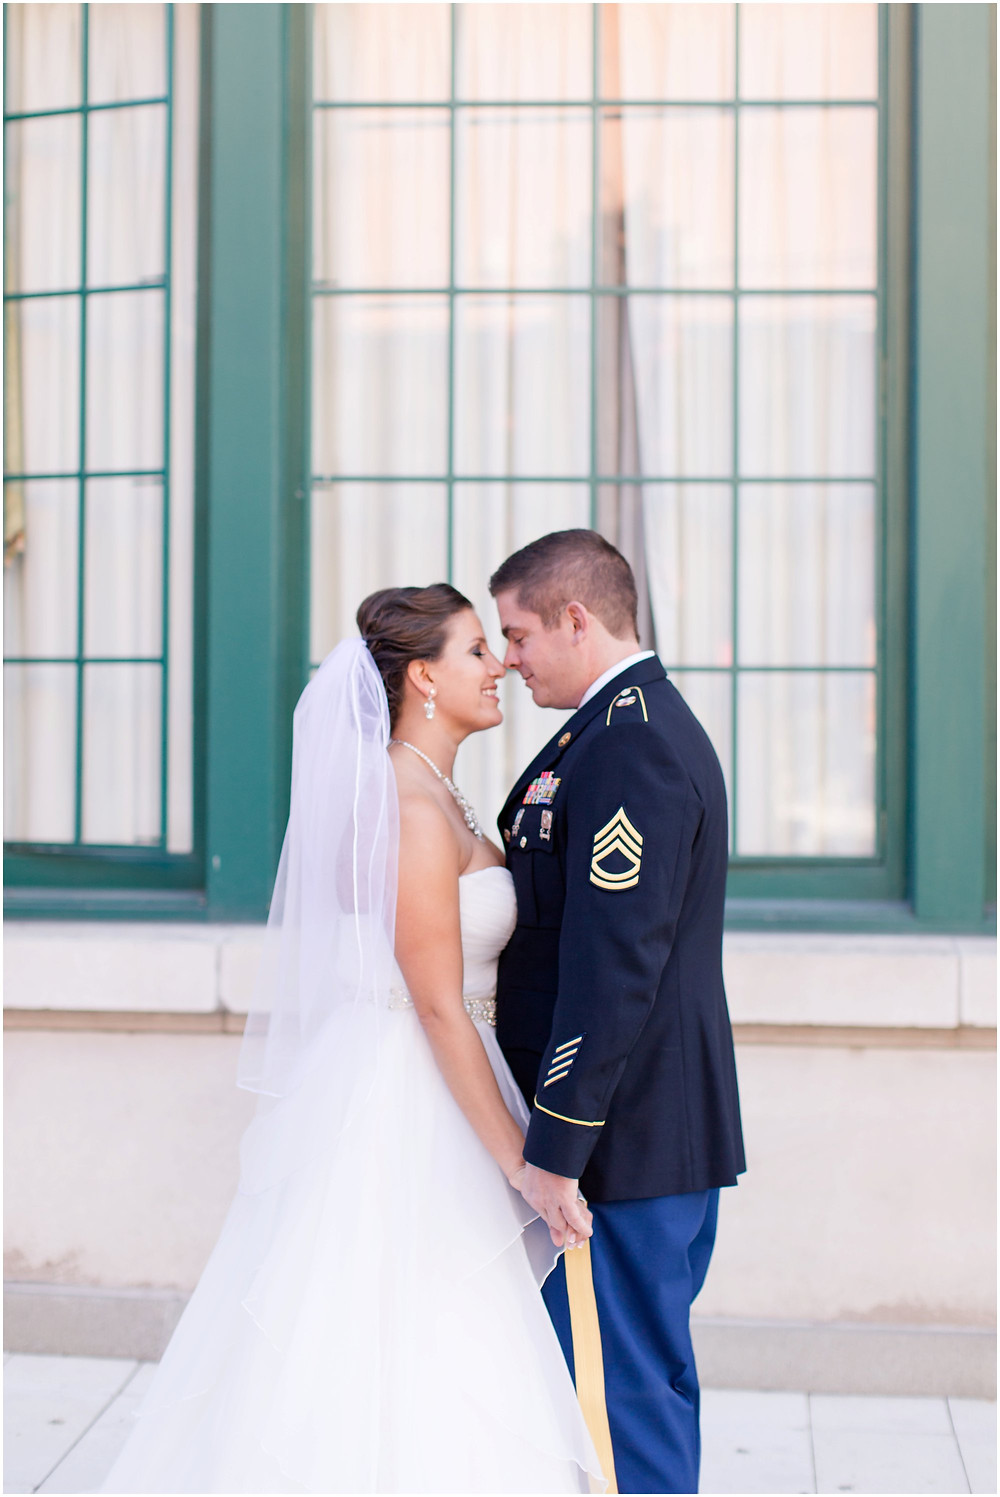 Bride and groom romantic poses